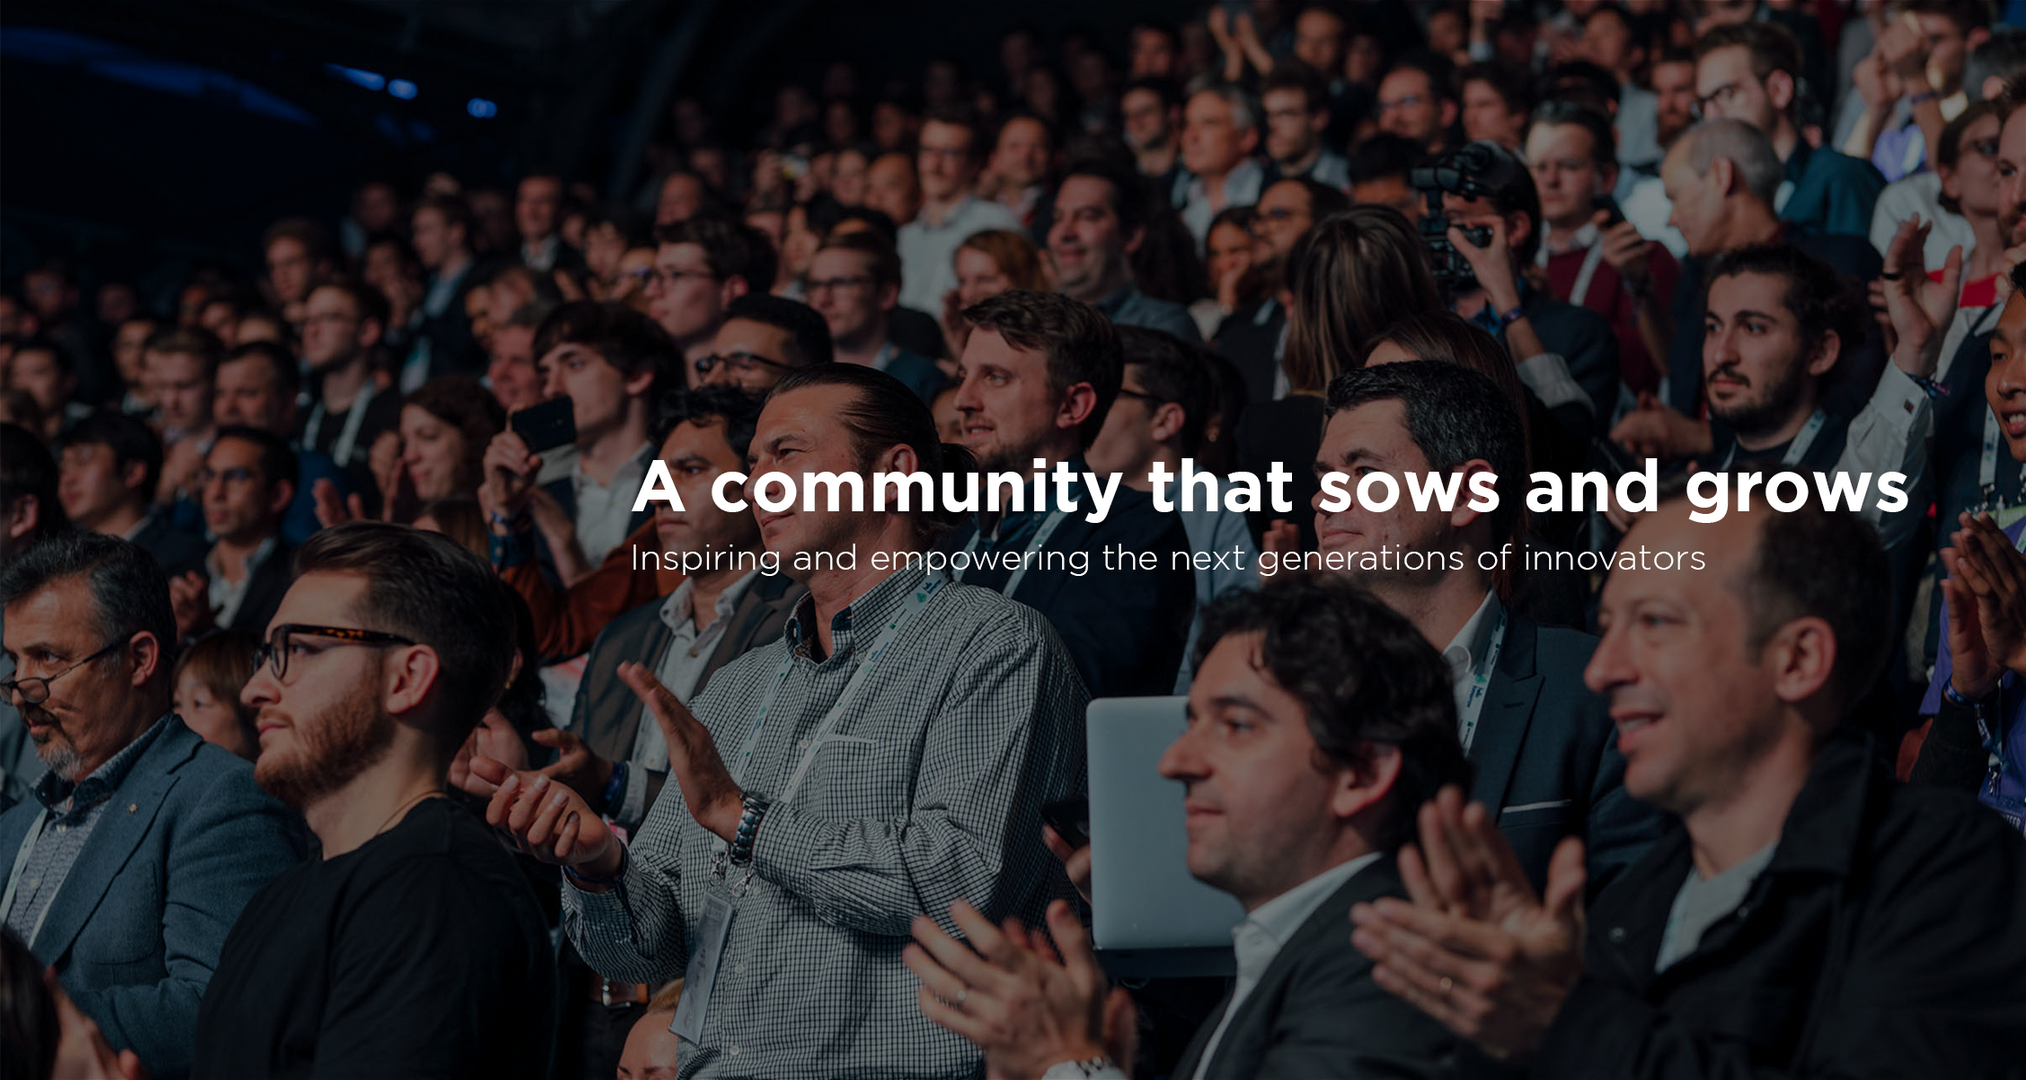 A community that sows and grows